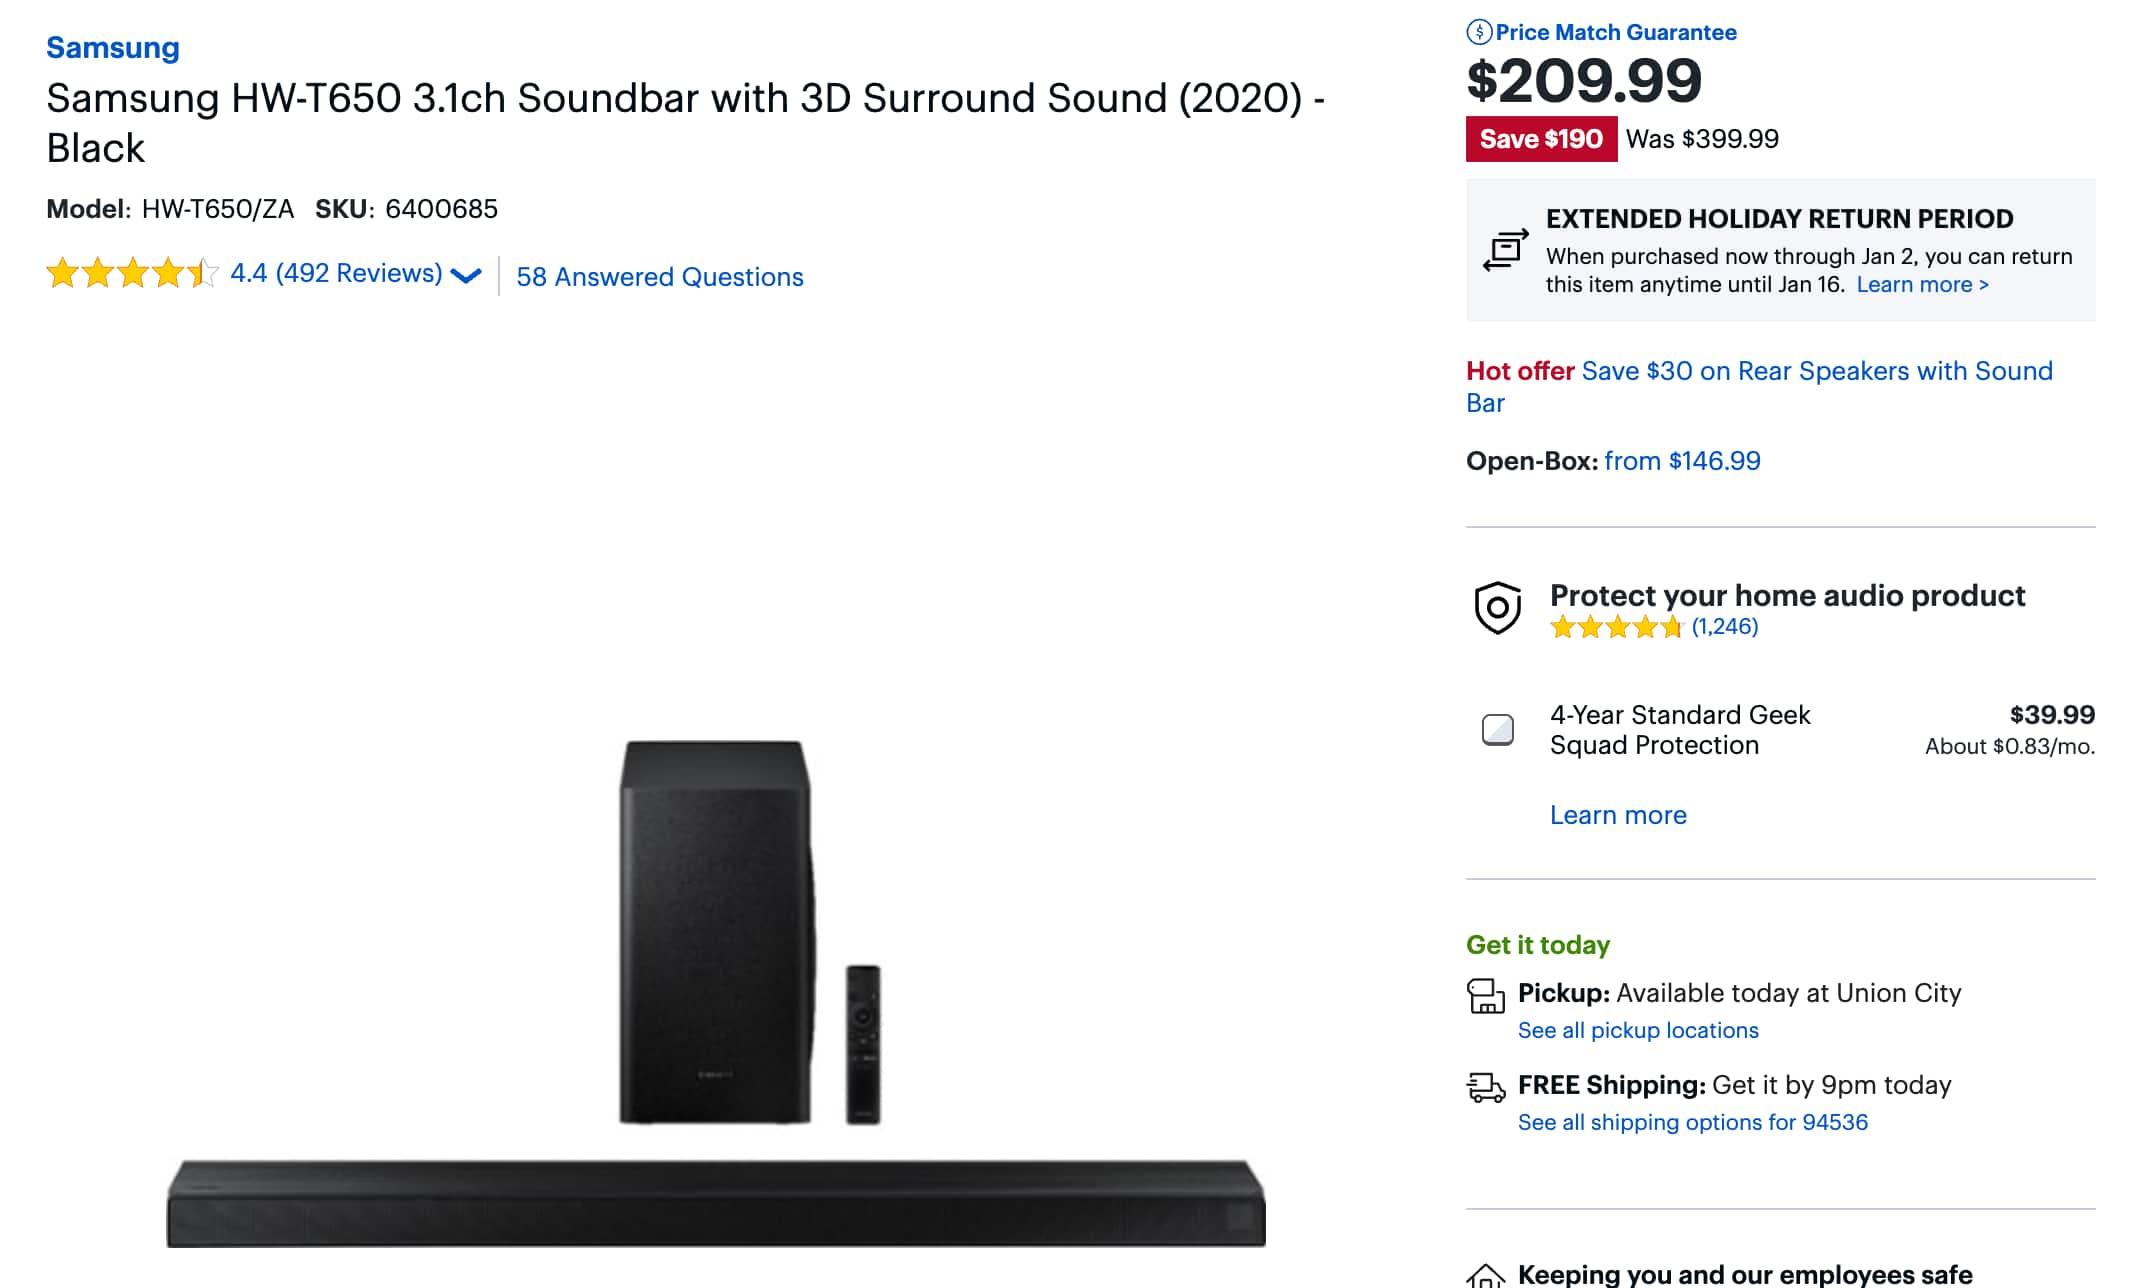 Samsung HW-T650 3.1ch Soundbar with 3D Surround Sound (2020)- 209.99 $209.99